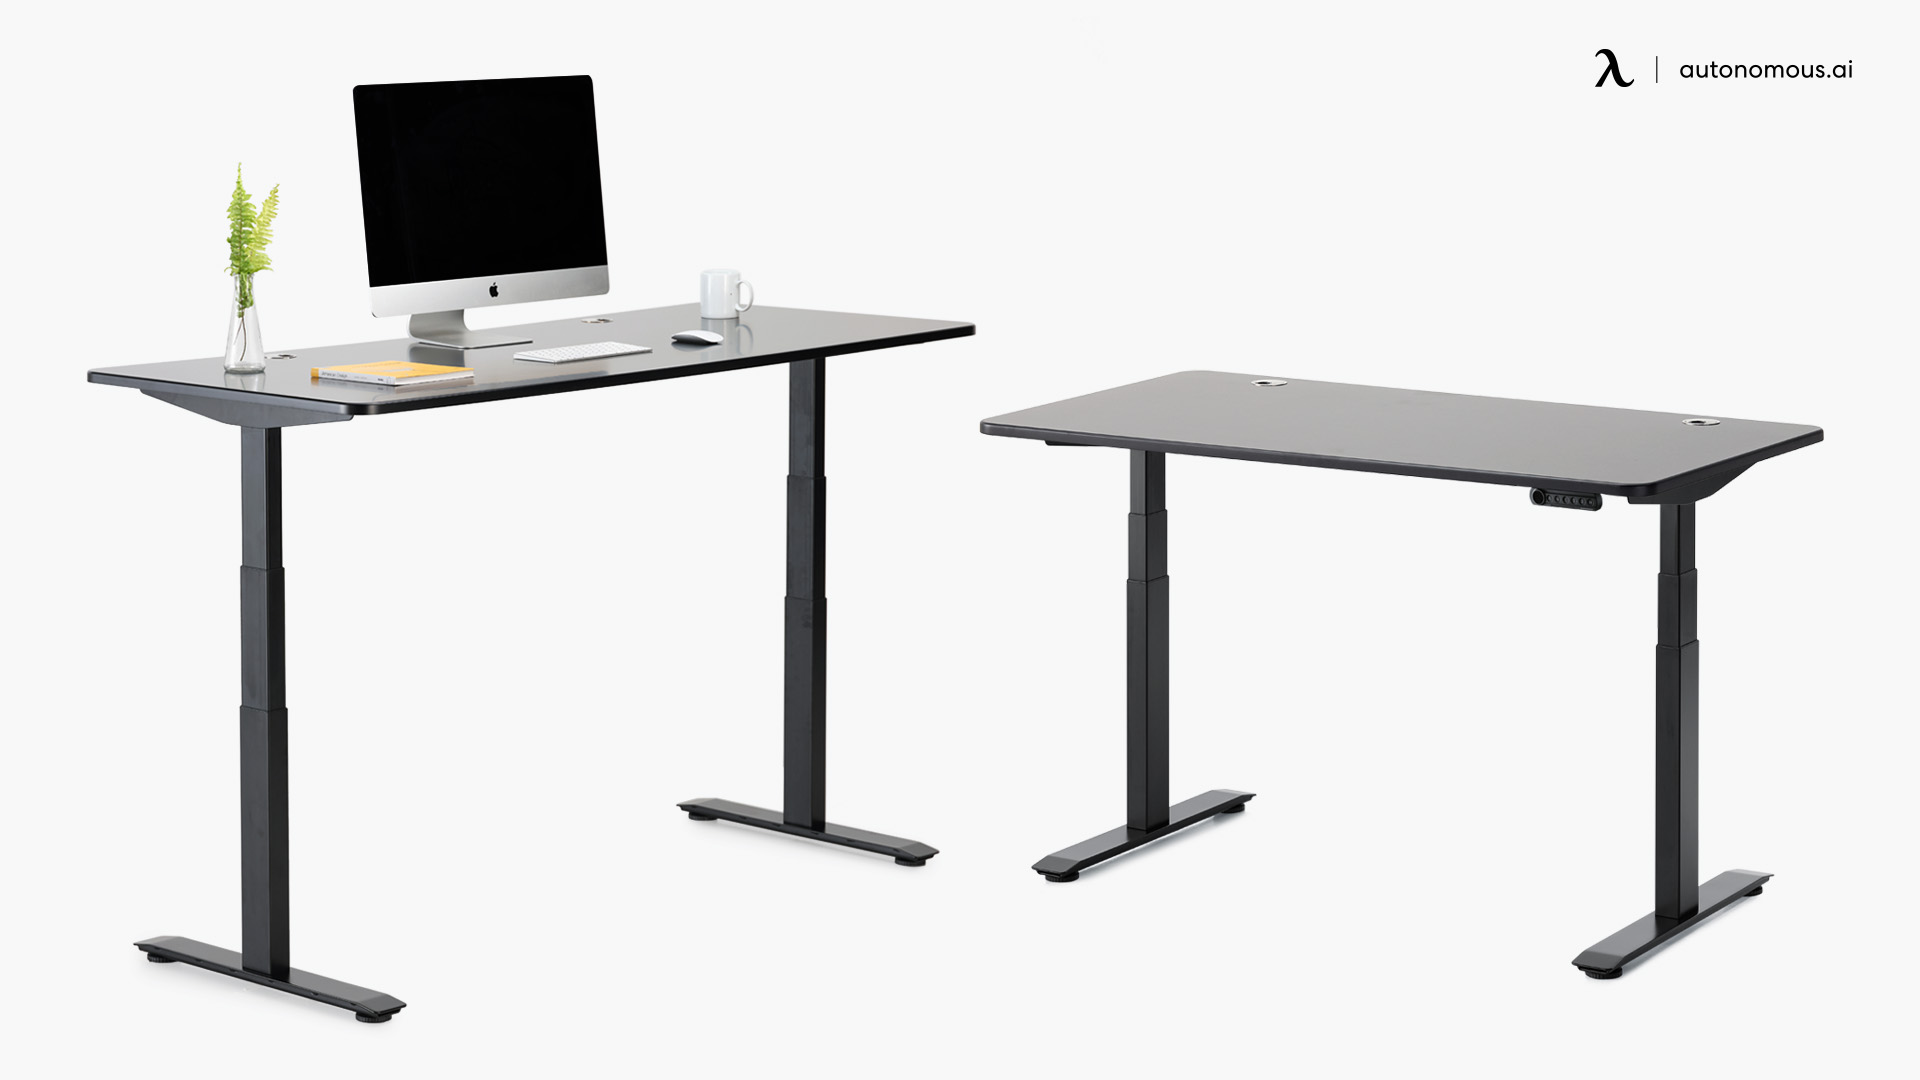 Size and shape of standing desk